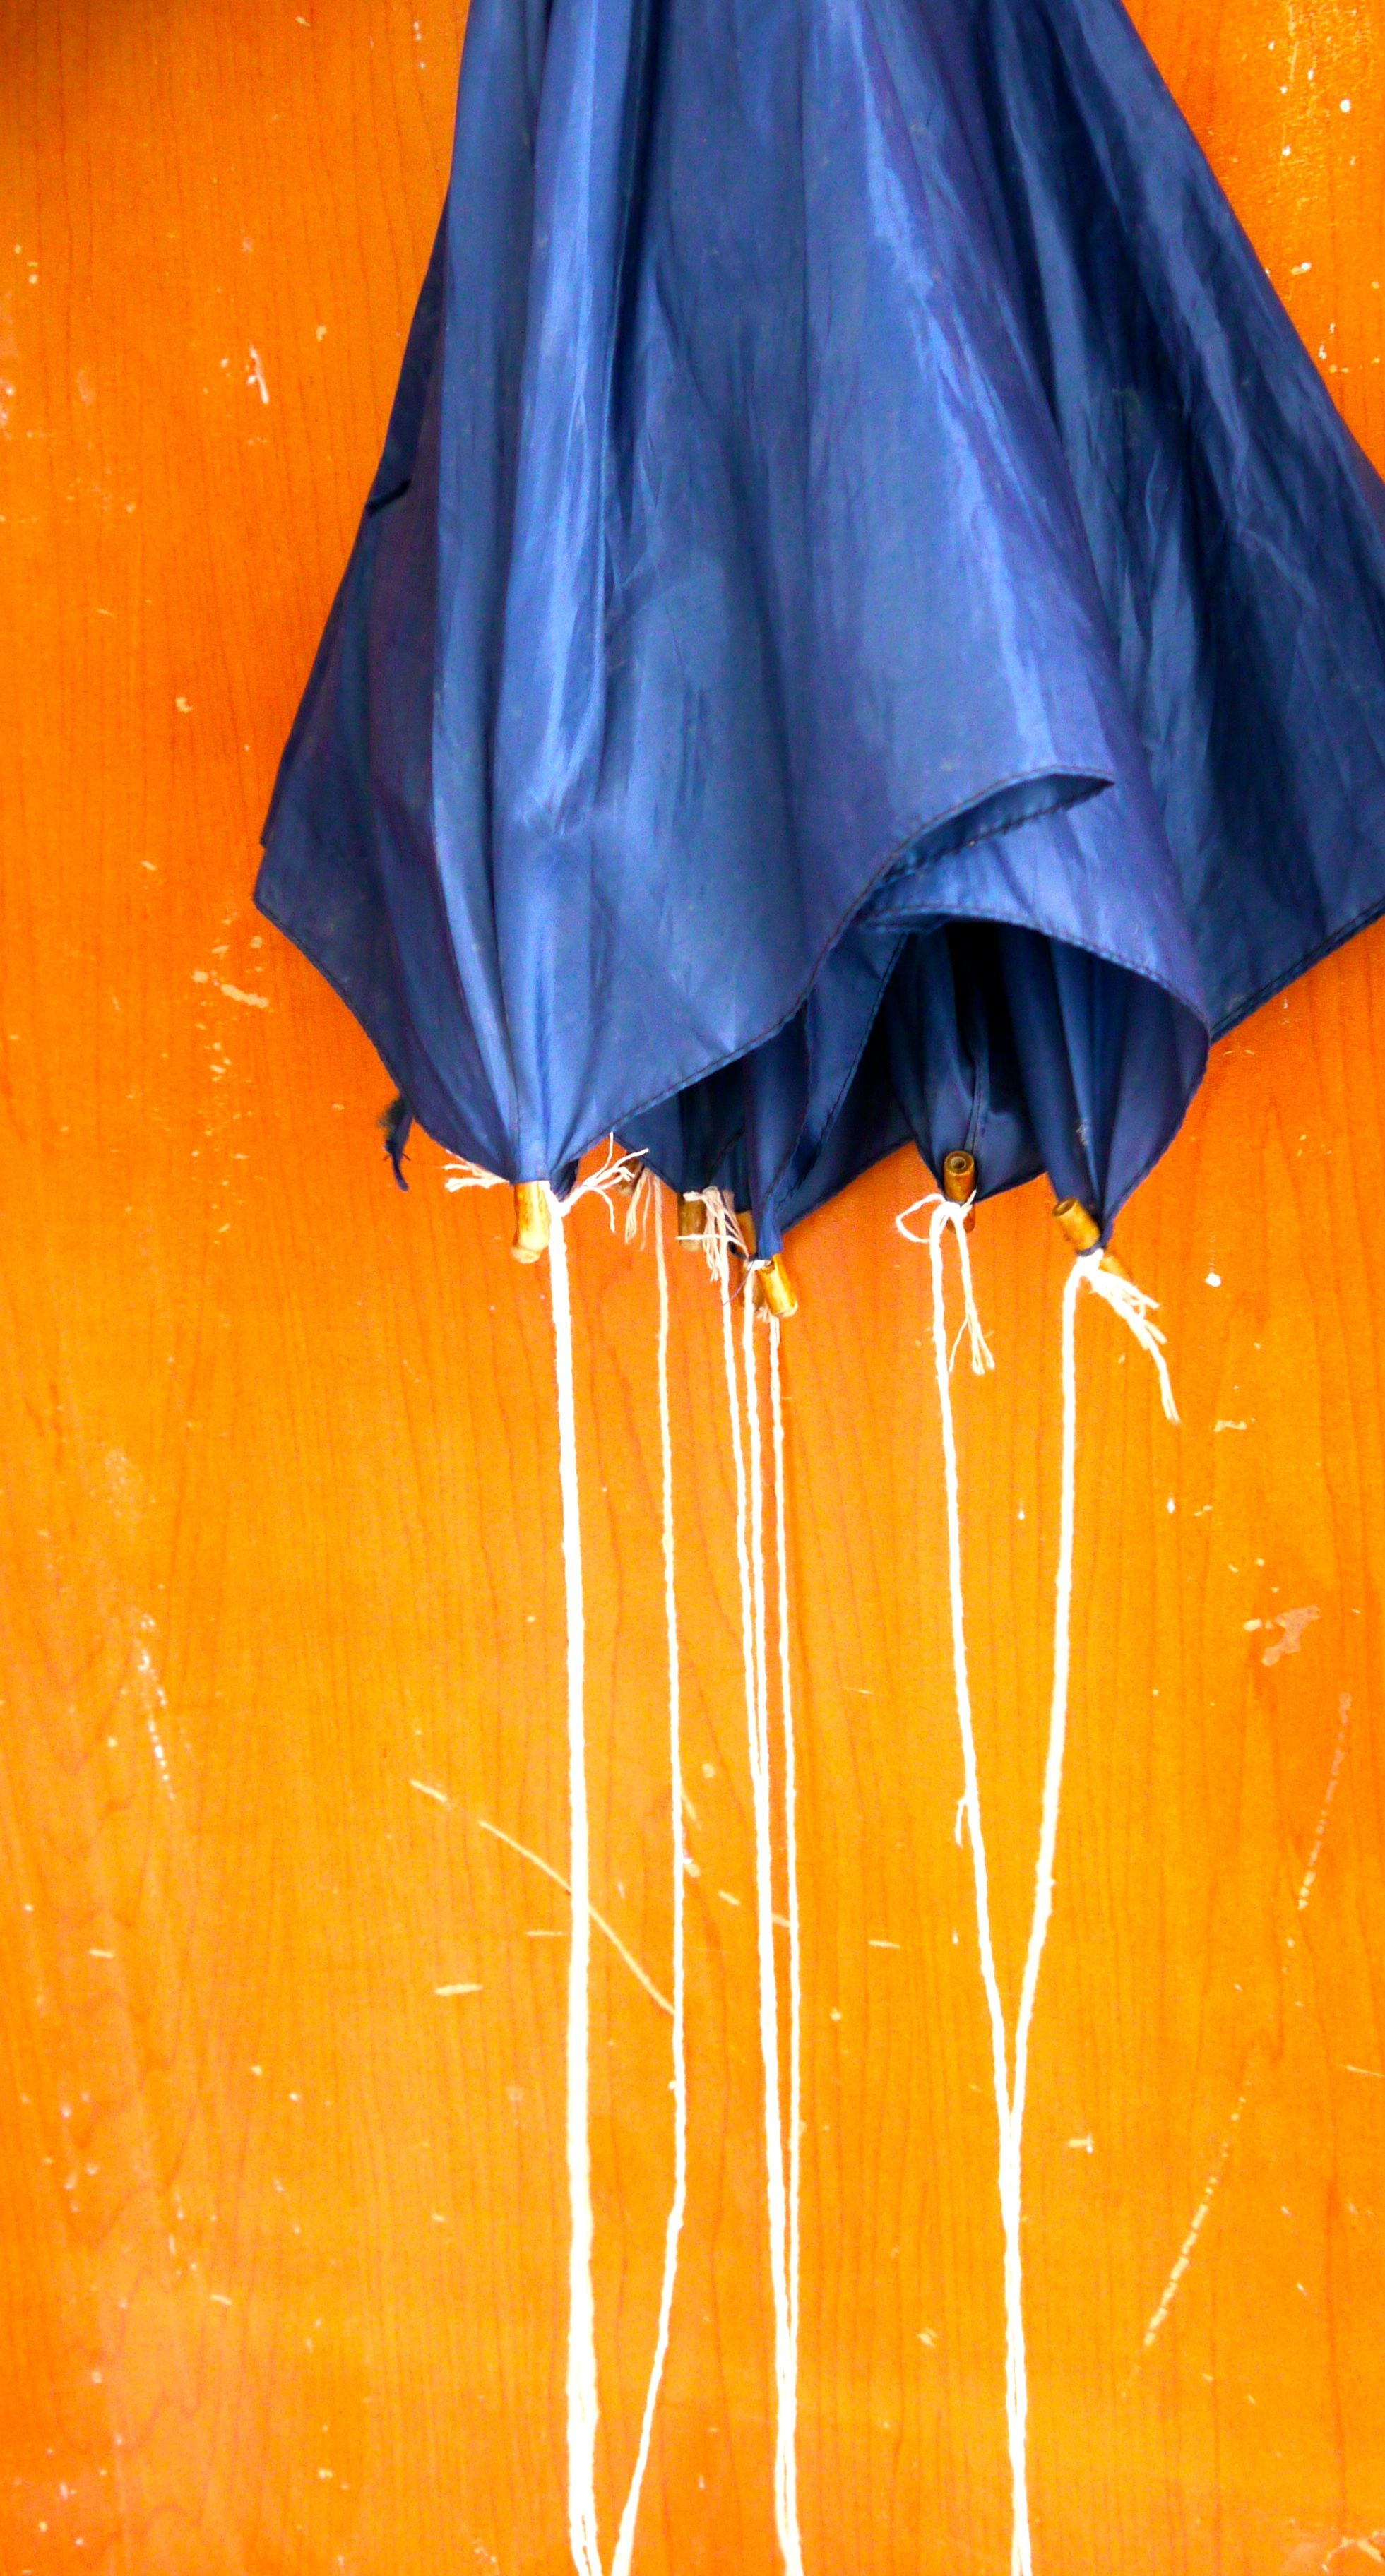 how to make a homemade toy parachute